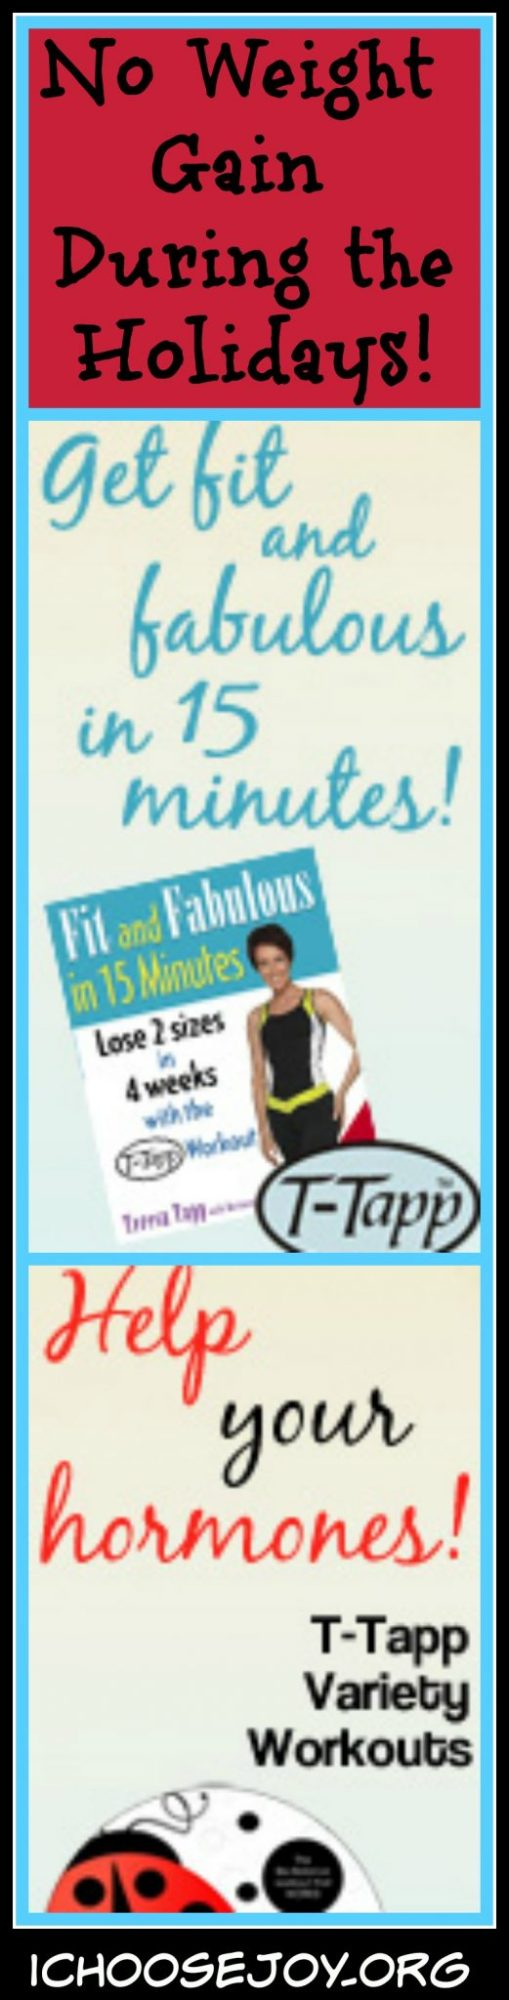 Use T-Tapp to Ward off the Weight Gain During the Holidays!